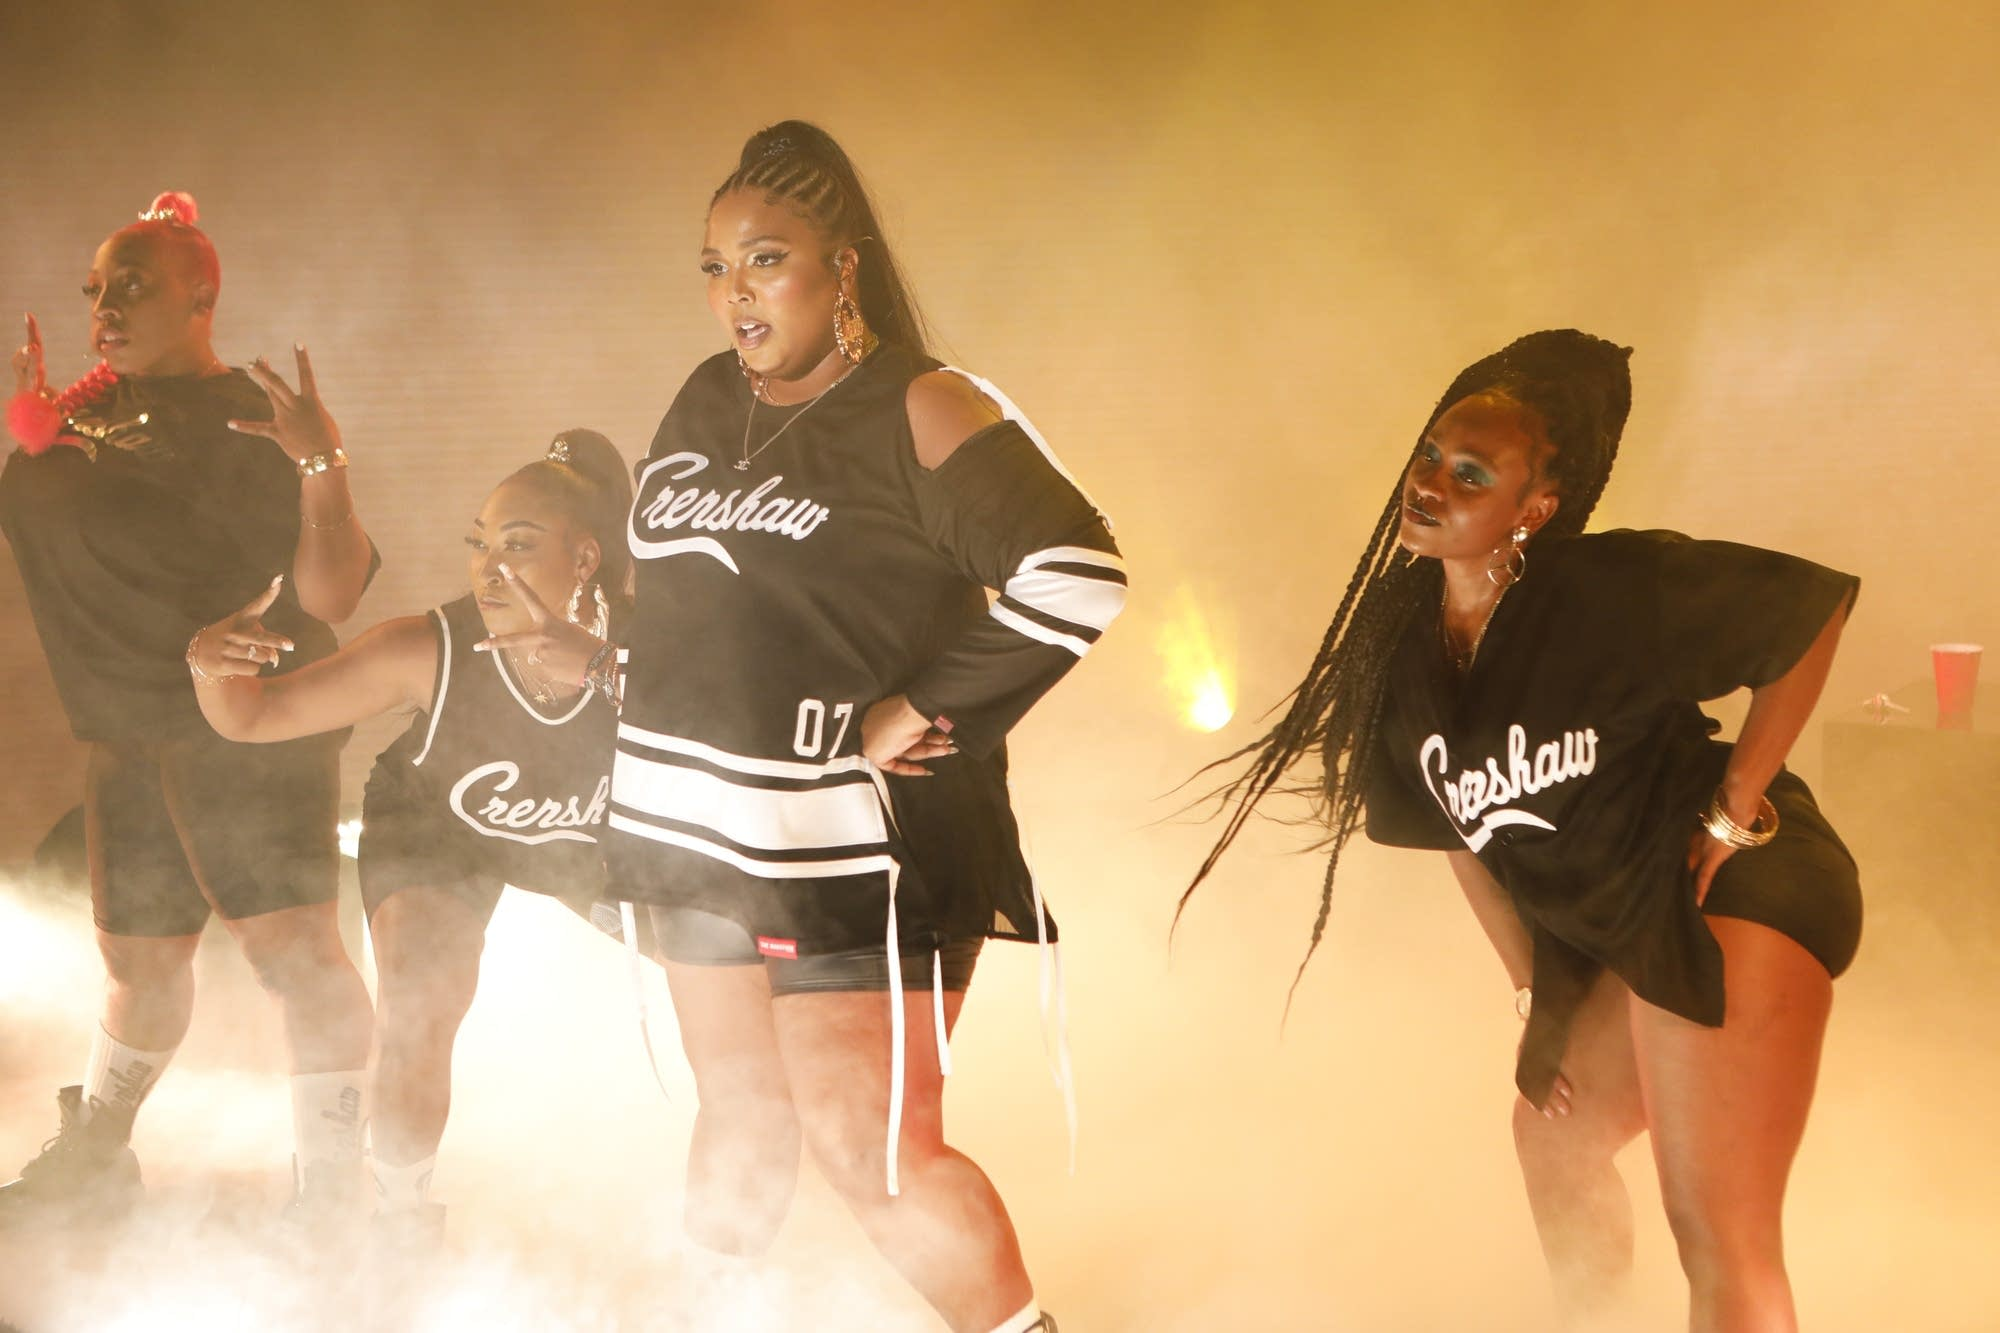 Lizzo performs 'Juice' on 'Jimmy Kimmel Live!' on ABC